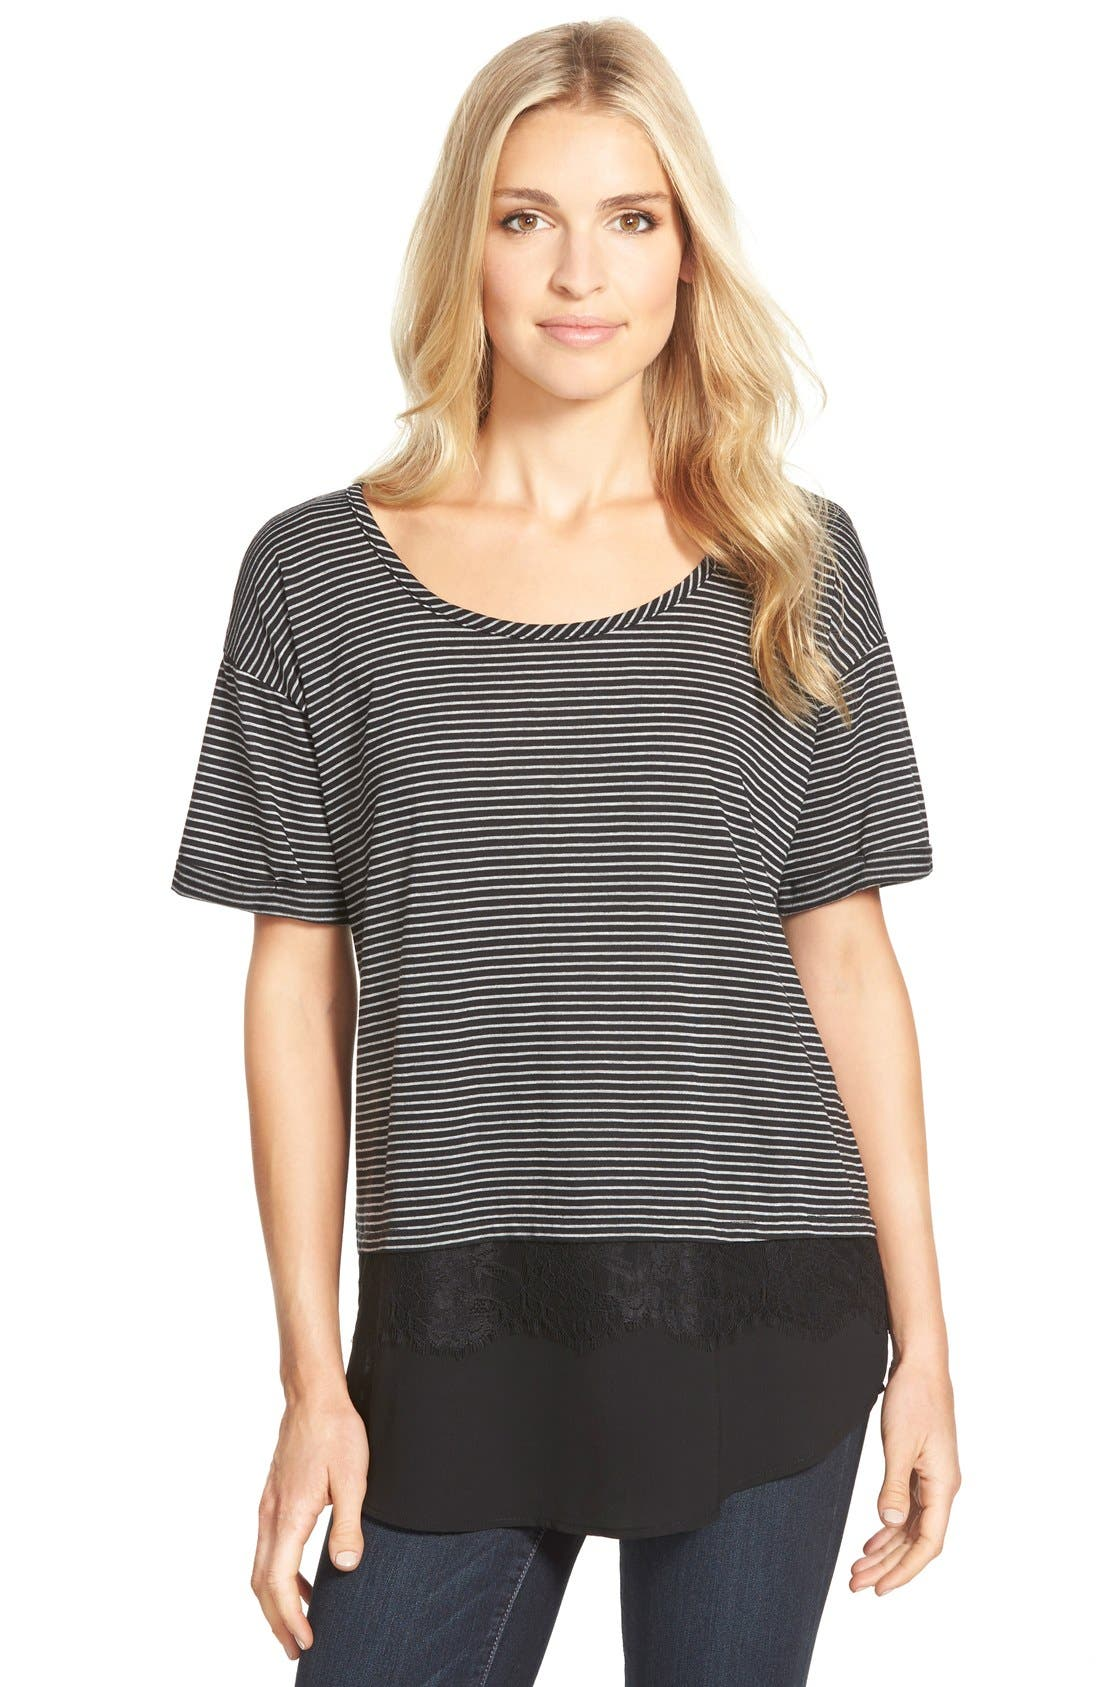 Lace Trim Layered Look Tee,                             Main thumbnail 1, color,                             002